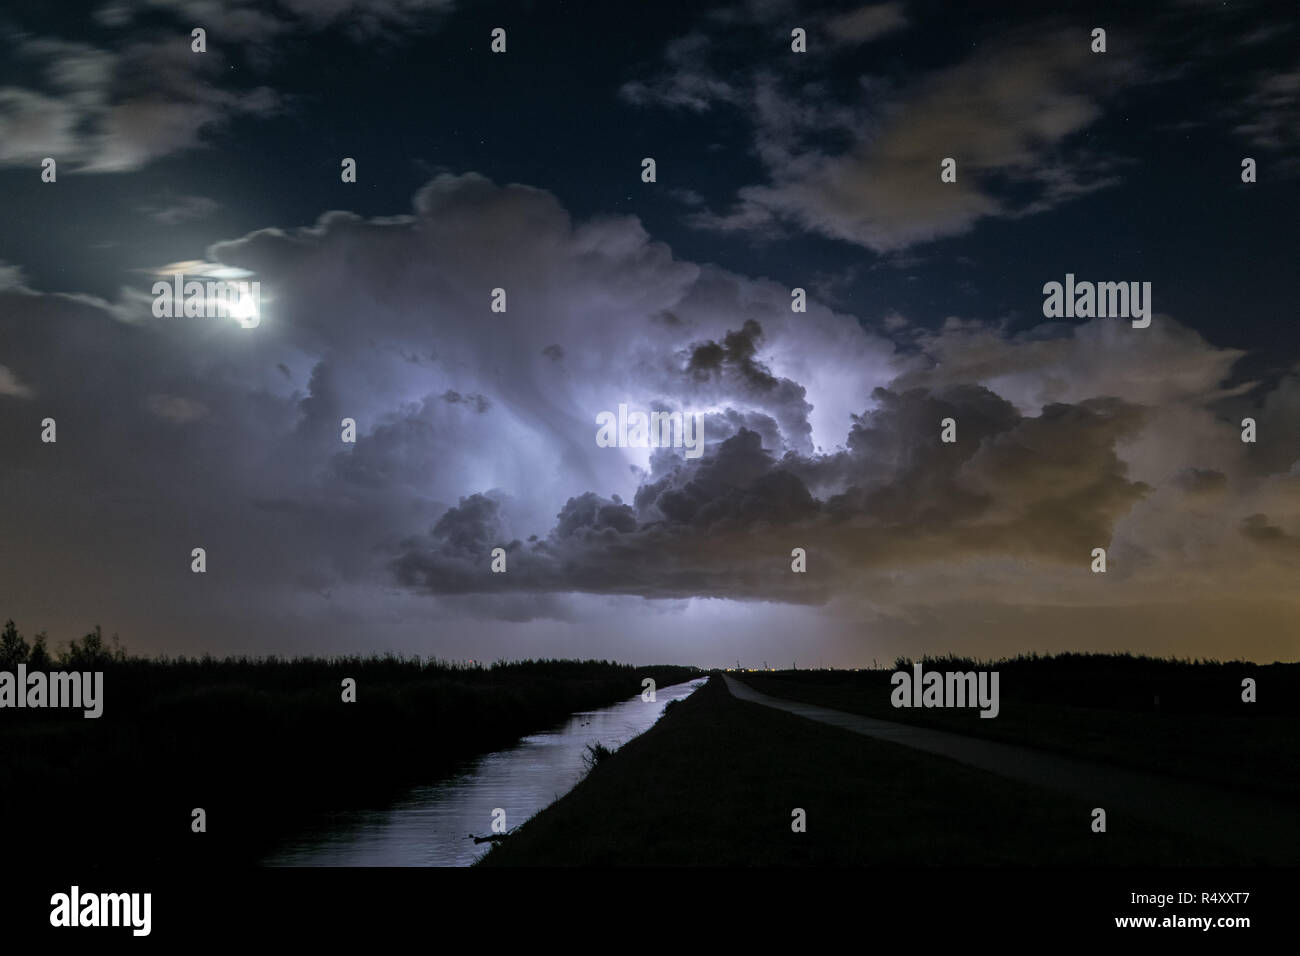 Thunderstorm clouds are illuminated by lightning. The moon is partly obscured by the storm. Location: close to the cities of Gouda and Leiden, Holland - Stock Image